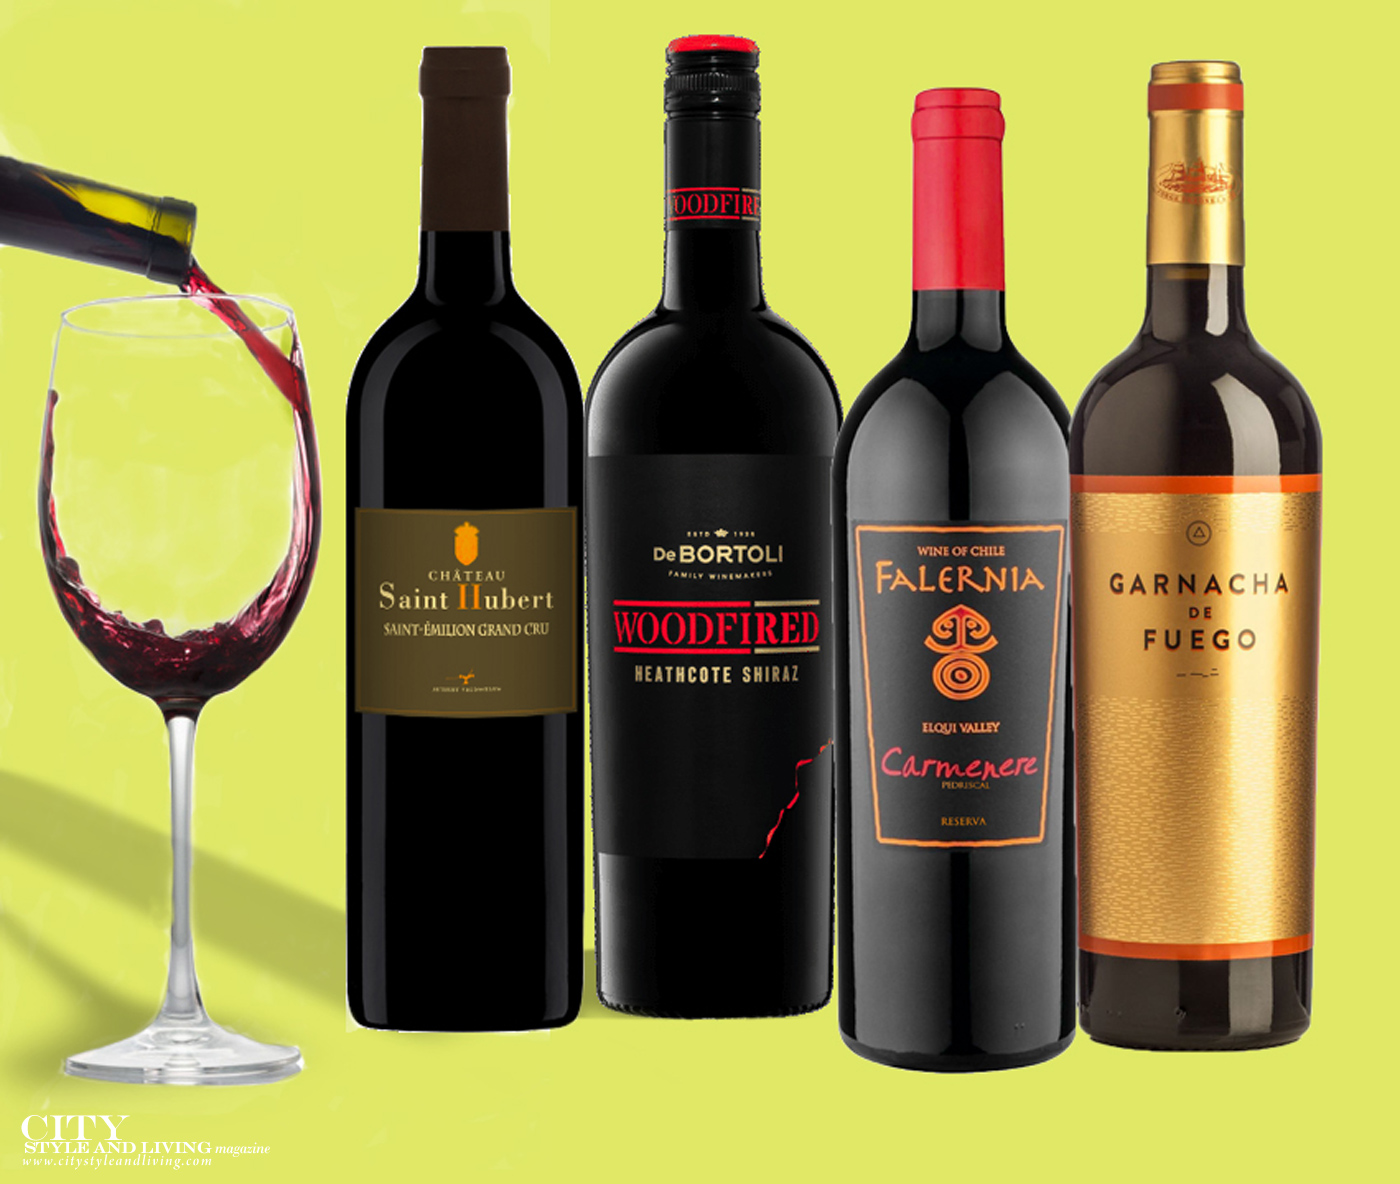 City Style and Living Spring 2021 Spring Red Wines